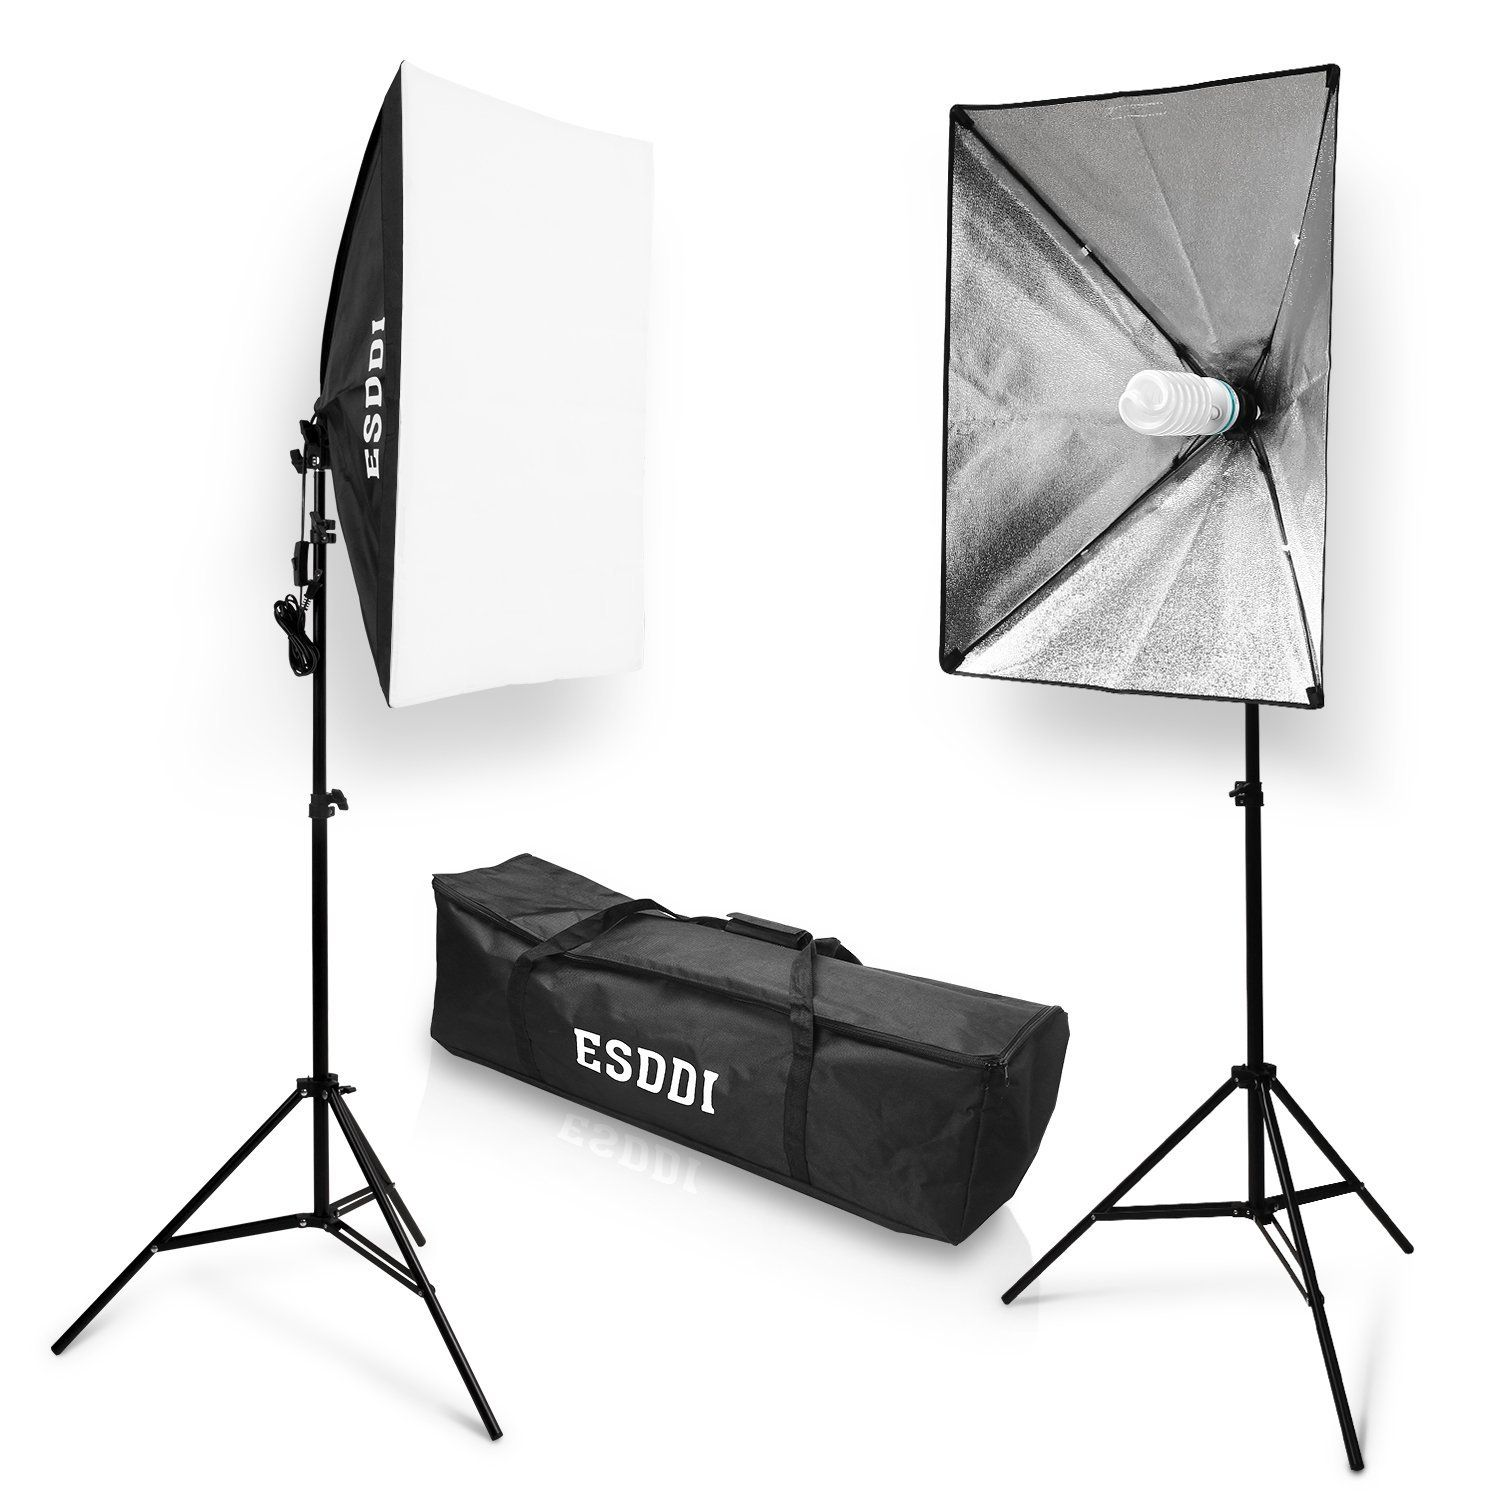 royalty photography image space of equipment free photos stock lighting photo studio